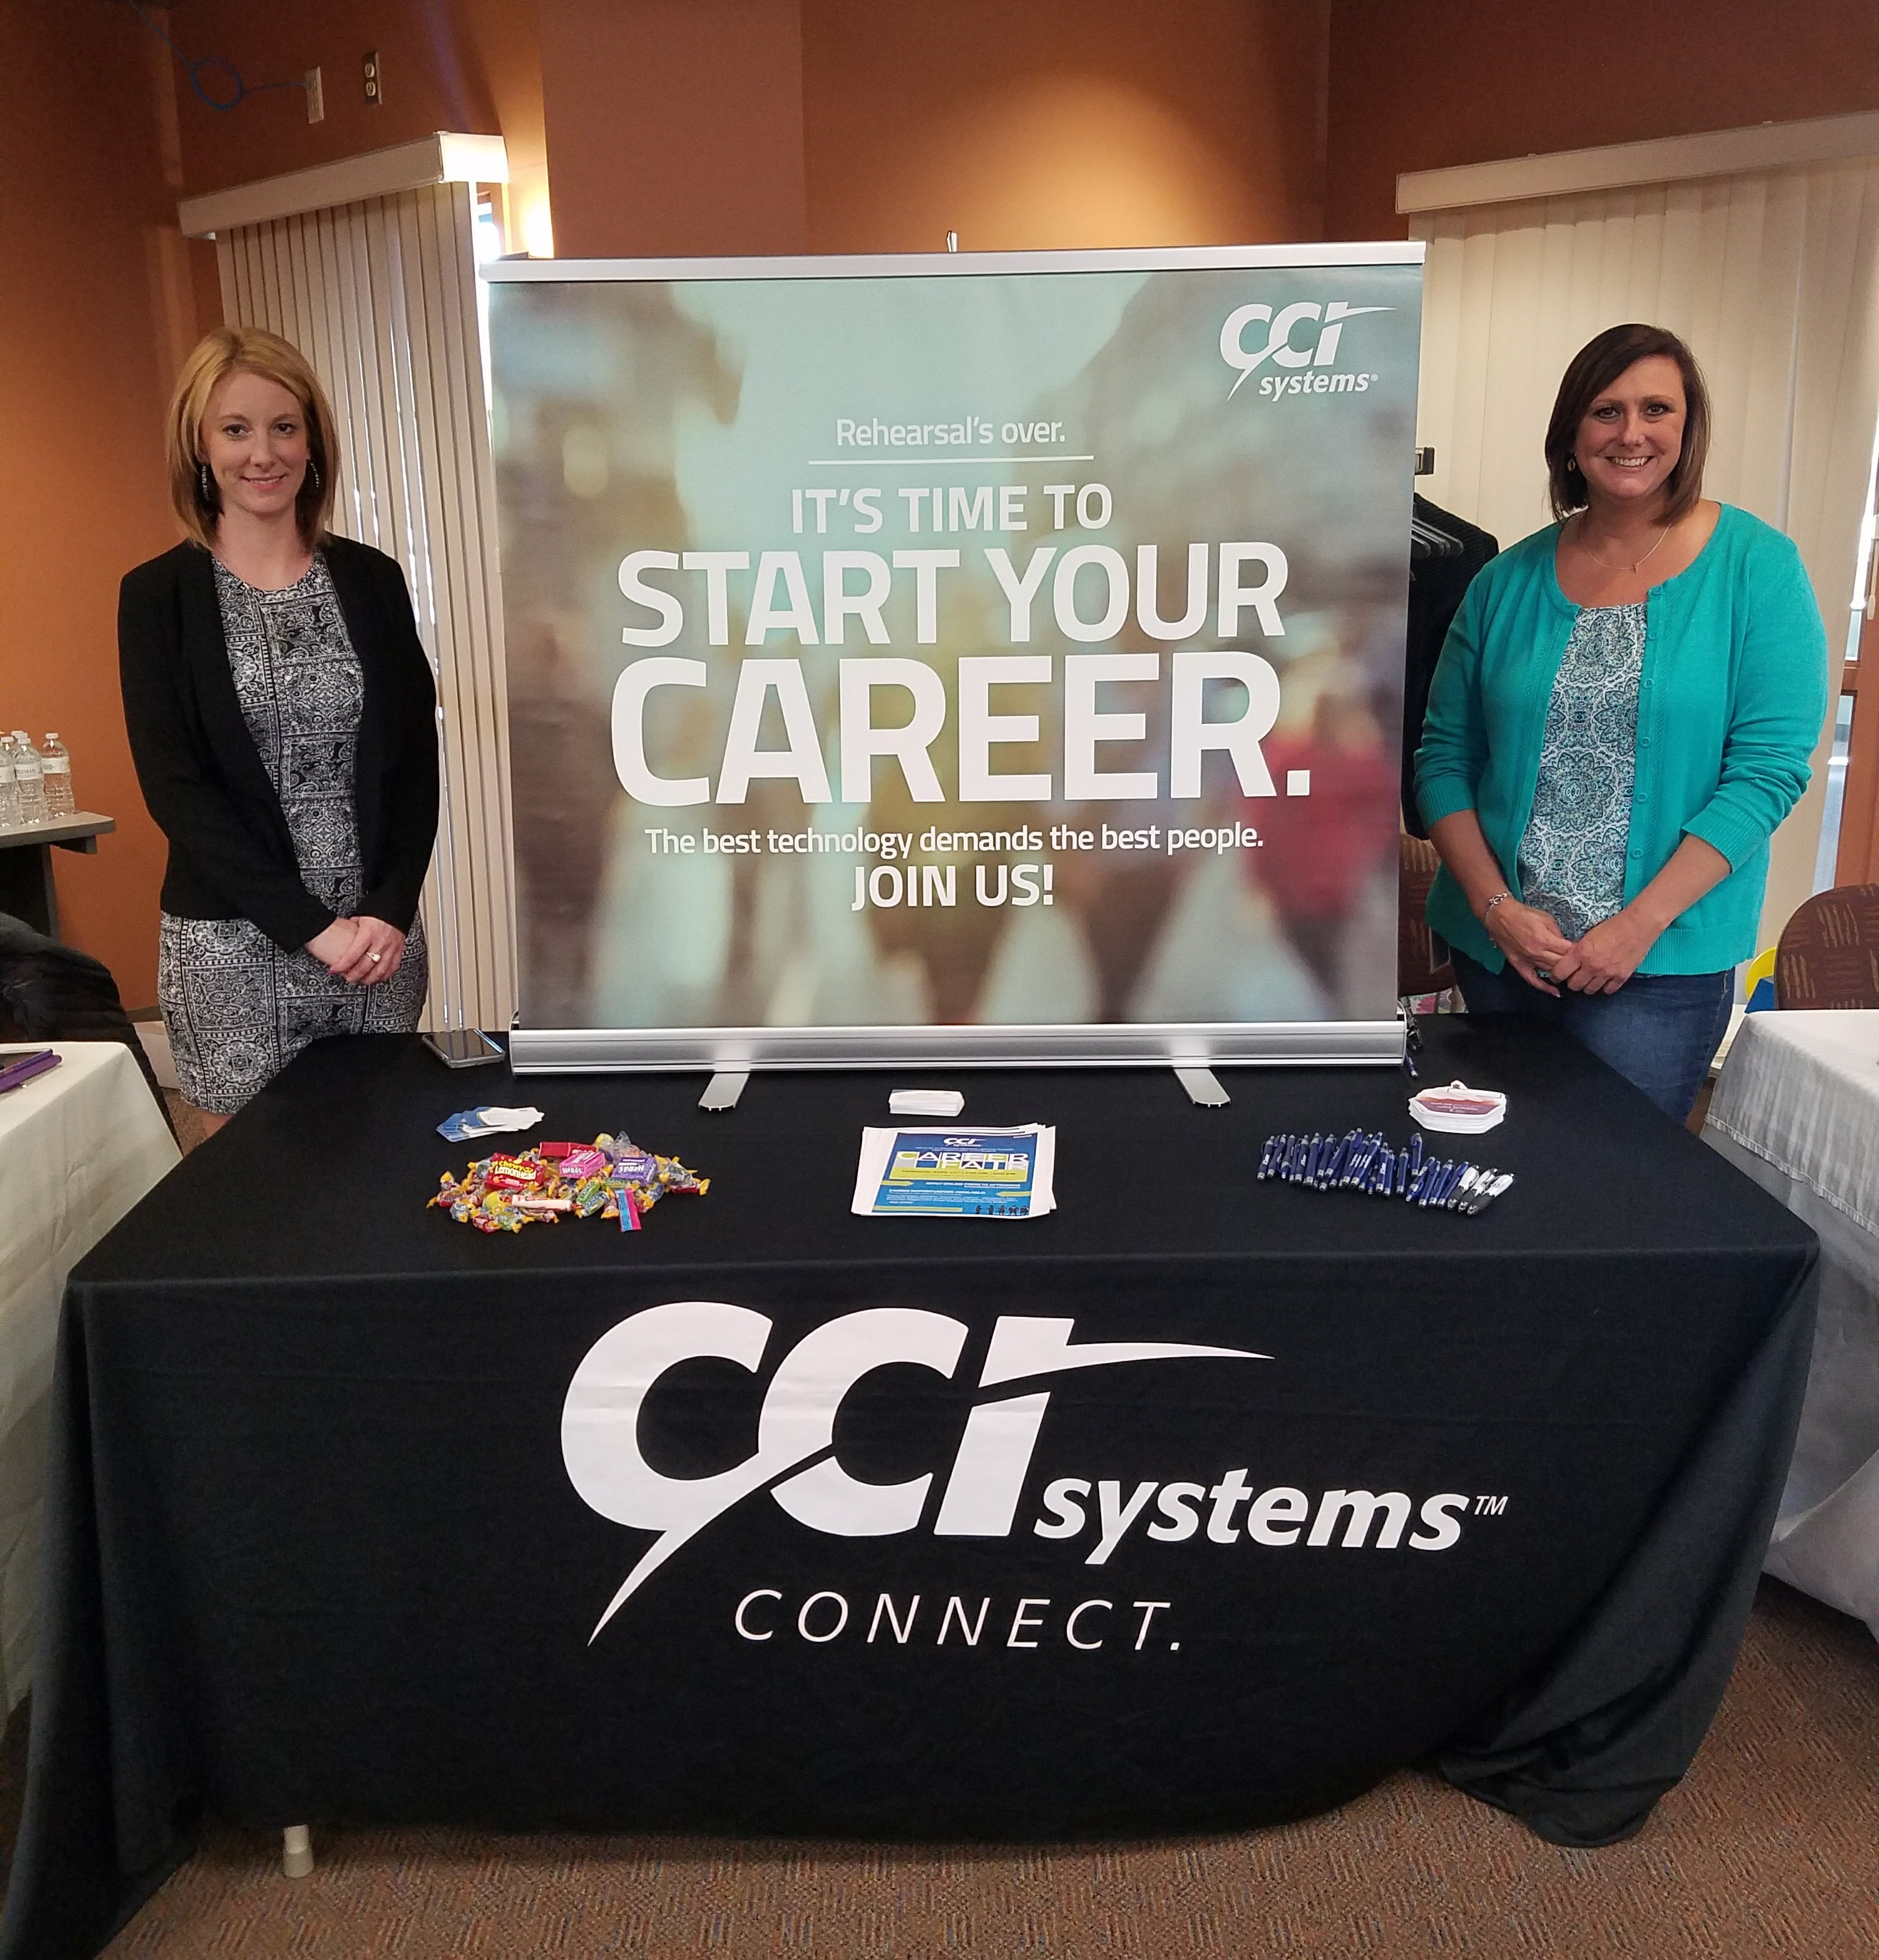 CCI Systems Expo